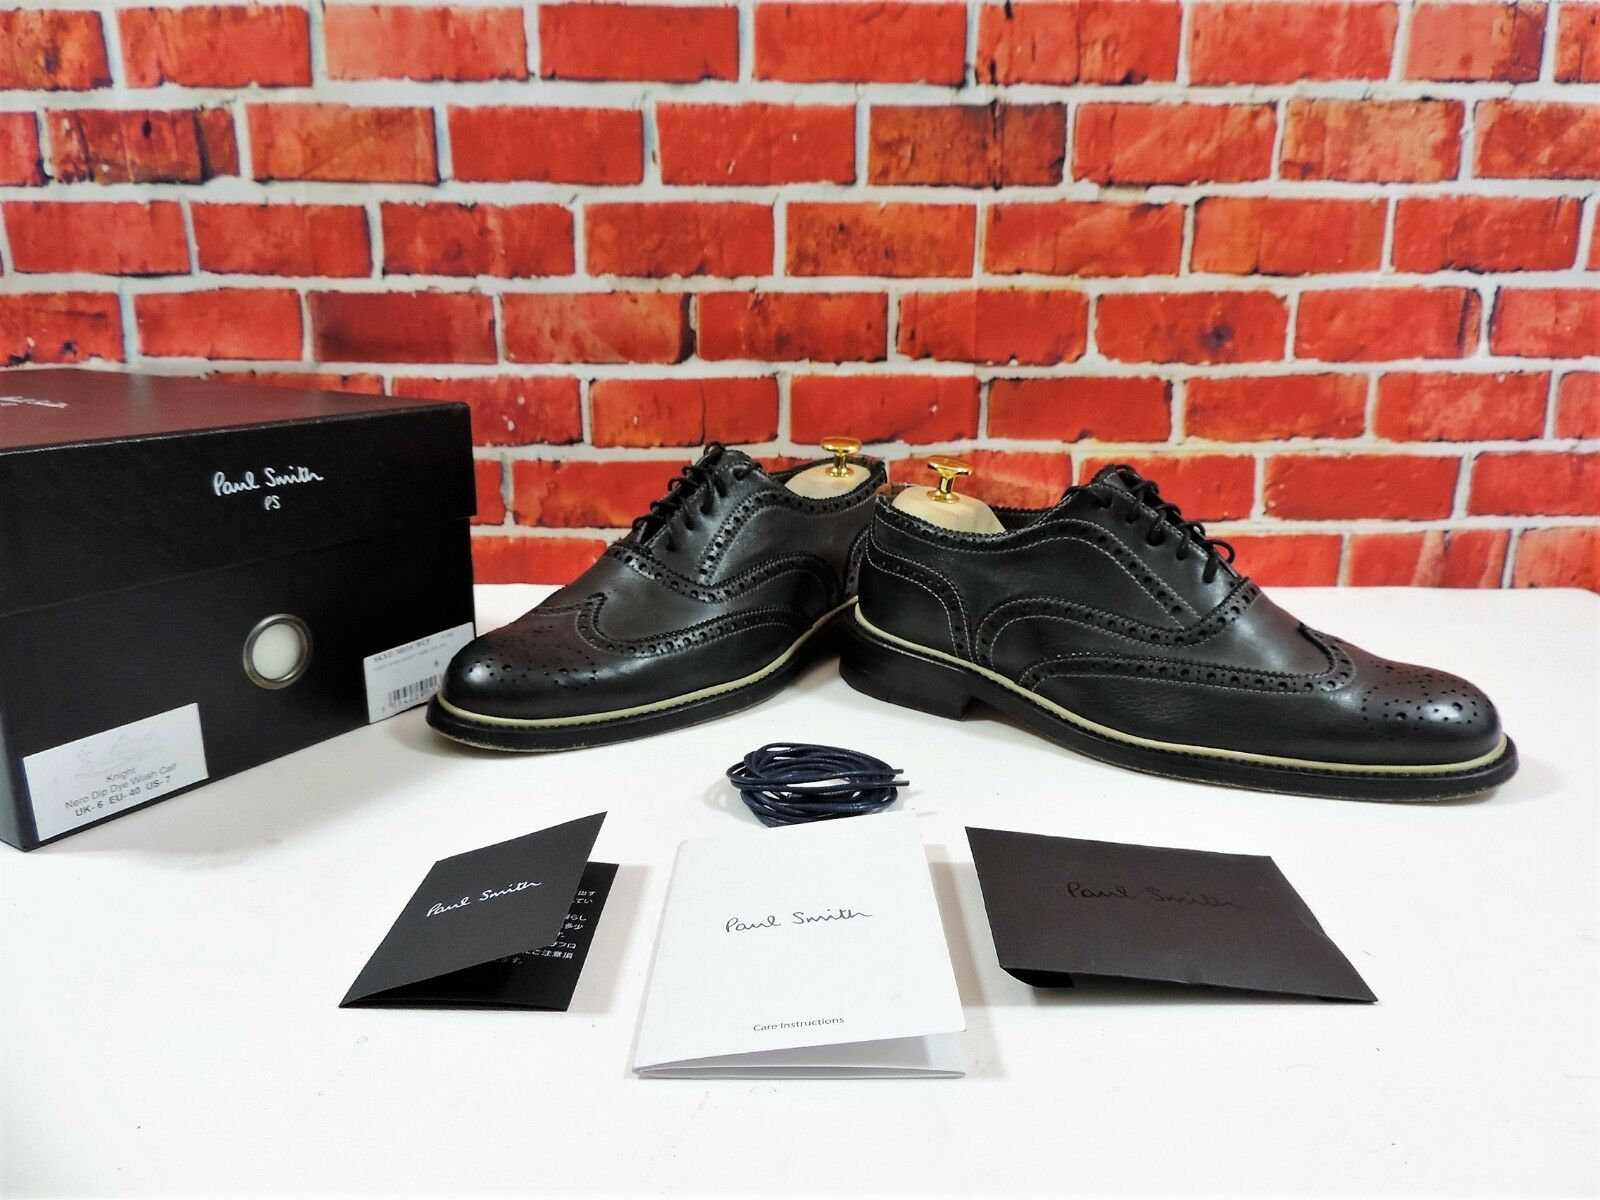 Paul Smith Brogues UK 6 US 7 EU 40  Worn Once Contrasting storm welt